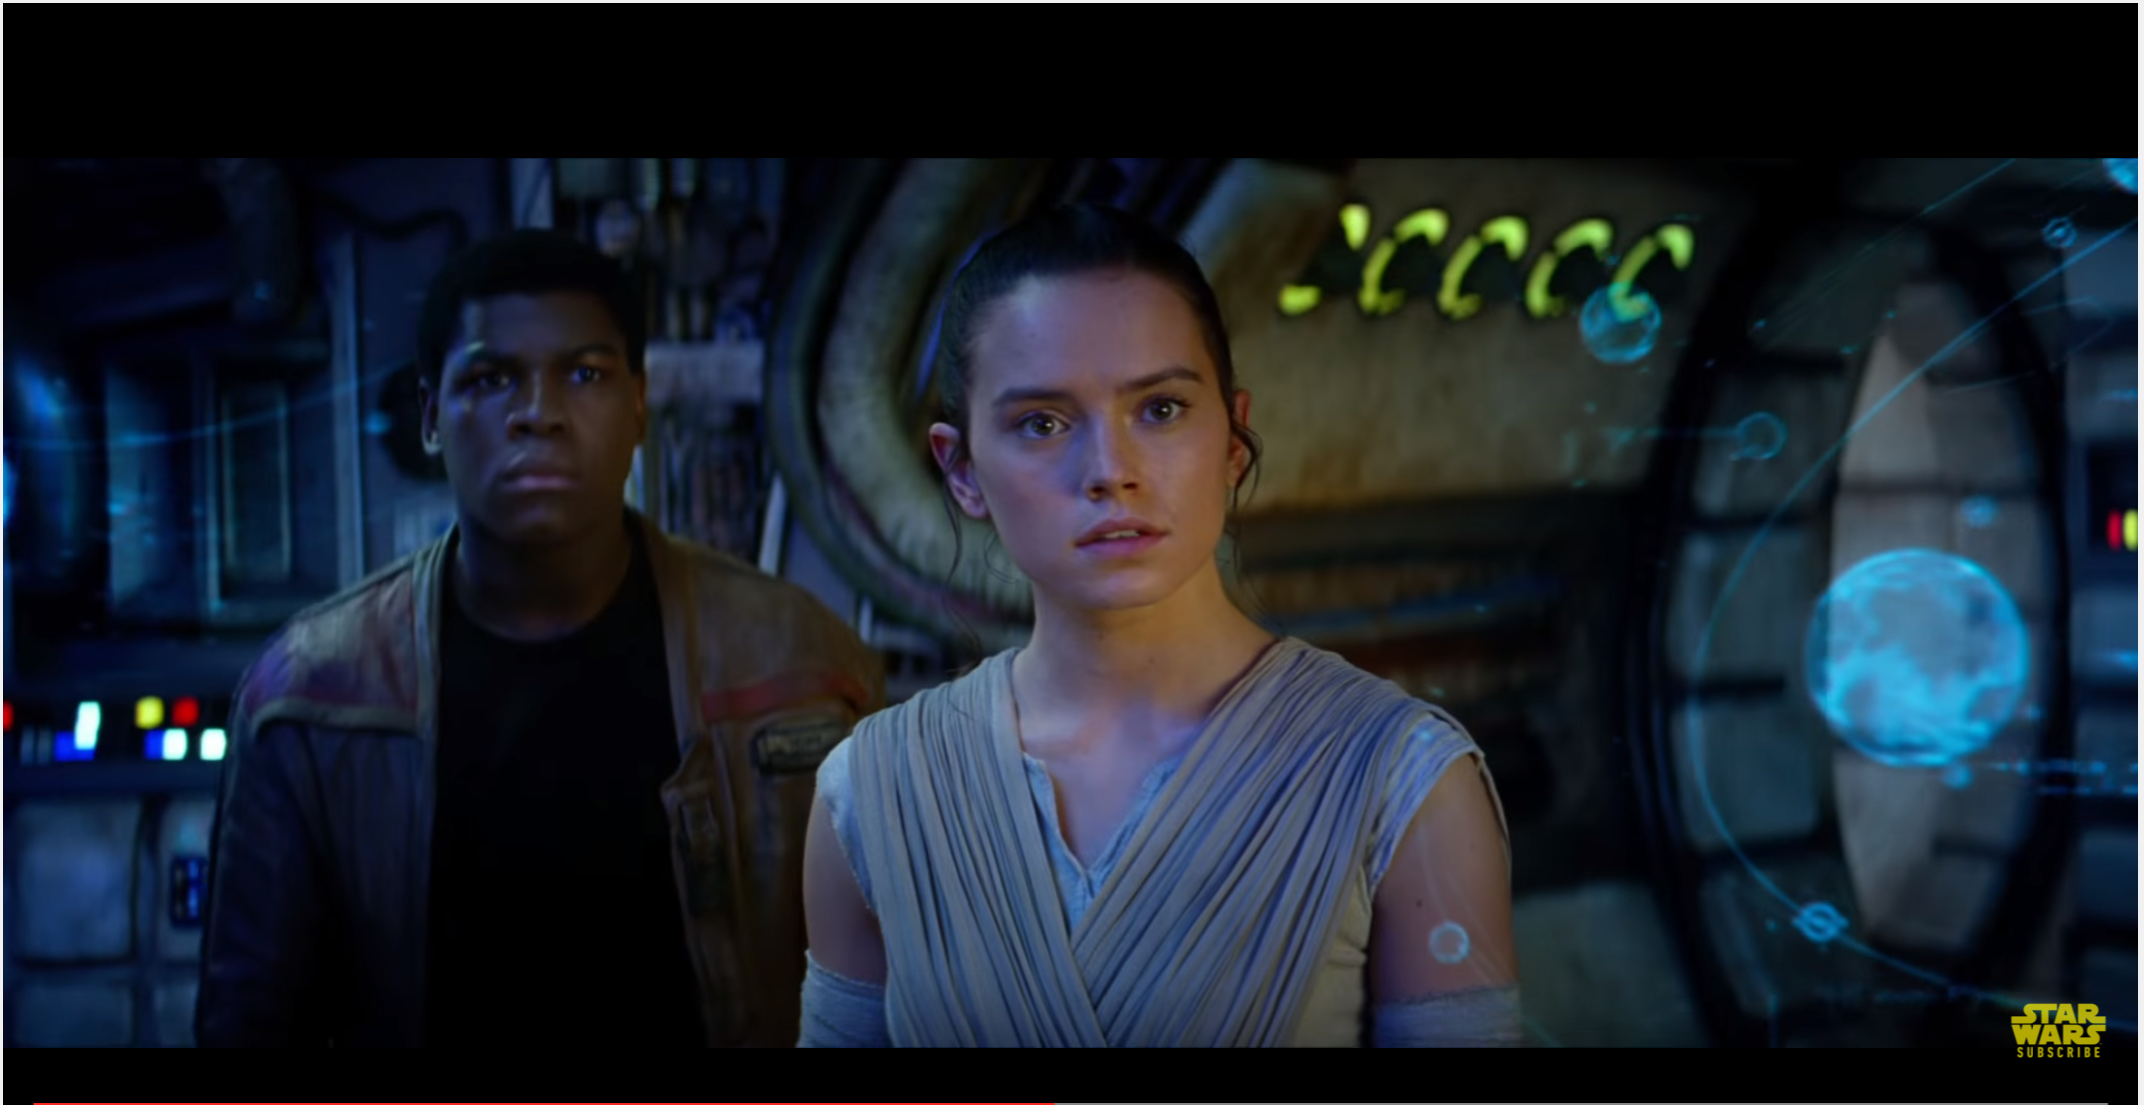 The New Star Wars: The Force Awakens Trailer